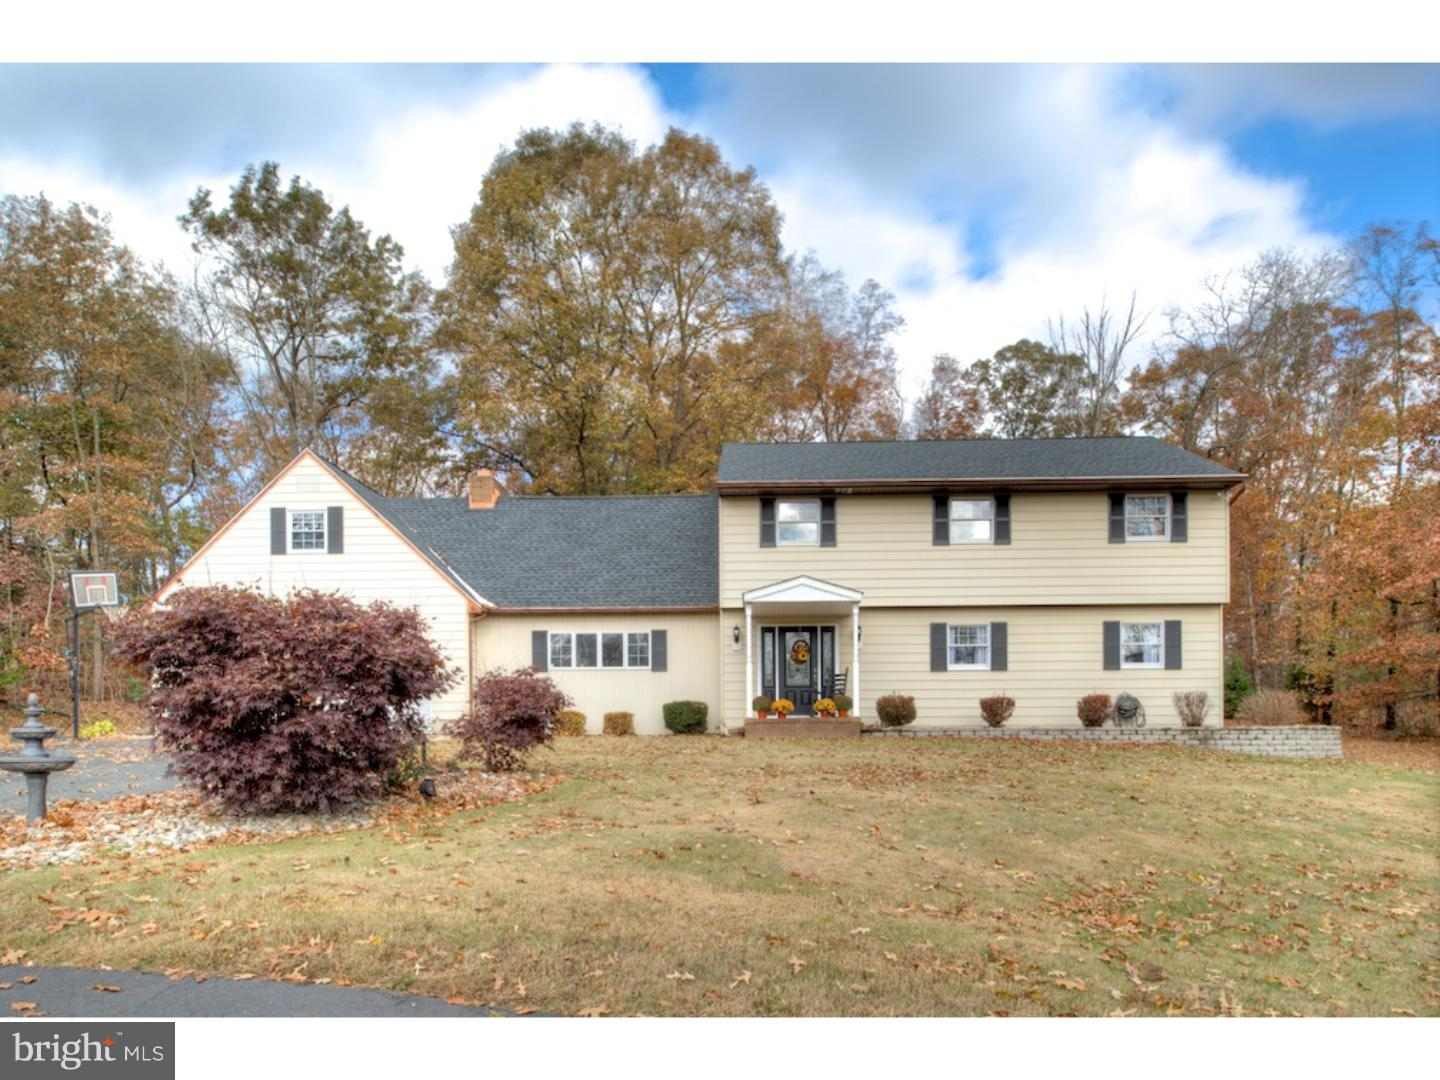 60 W SUNSET PINE DRIVE, UPPER DEERFIELD, NJ 08302